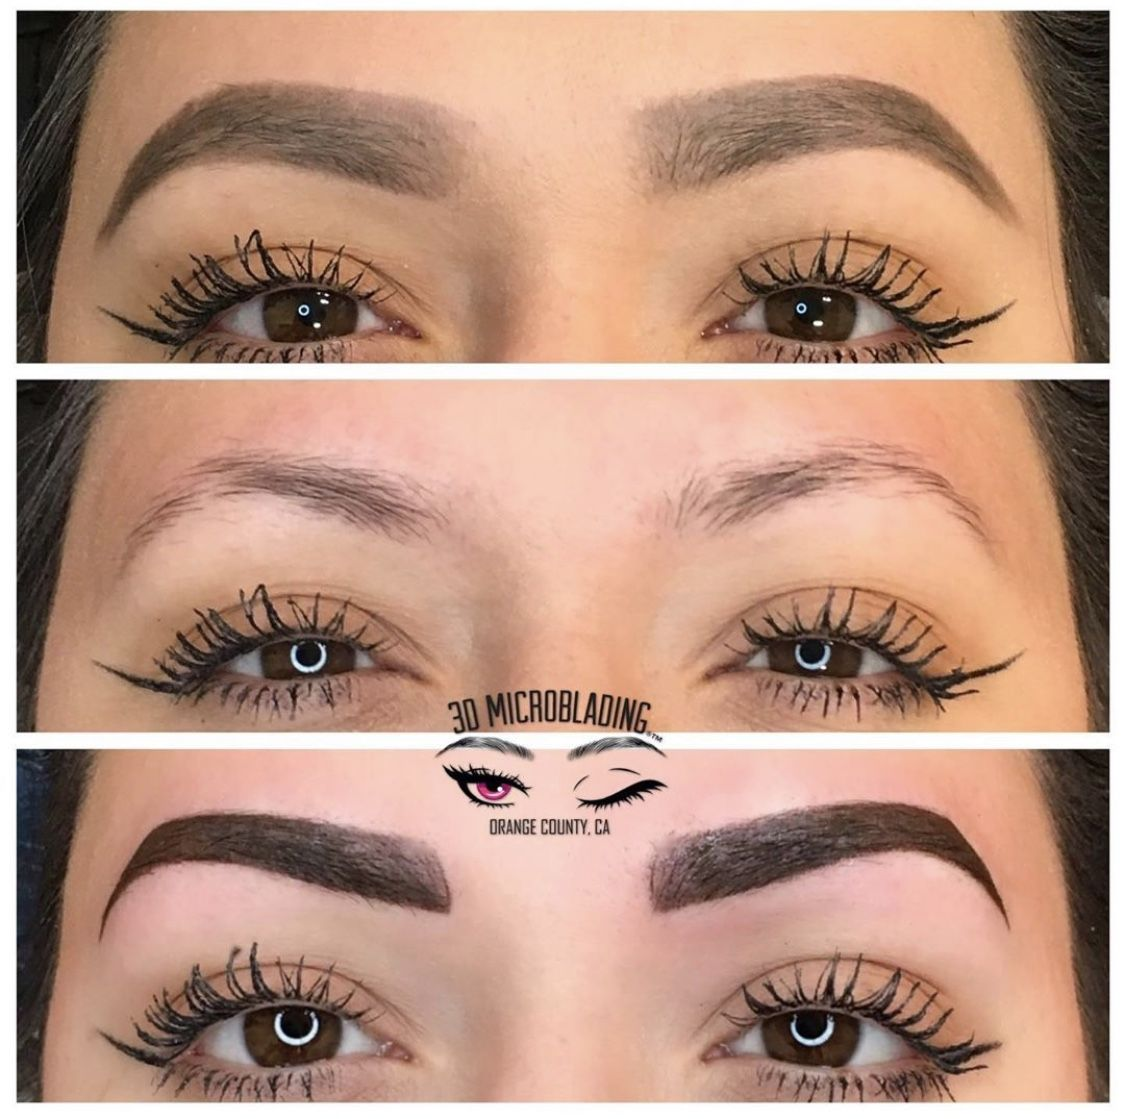 Powder brows by Franchesca DC in 2020 Microblading